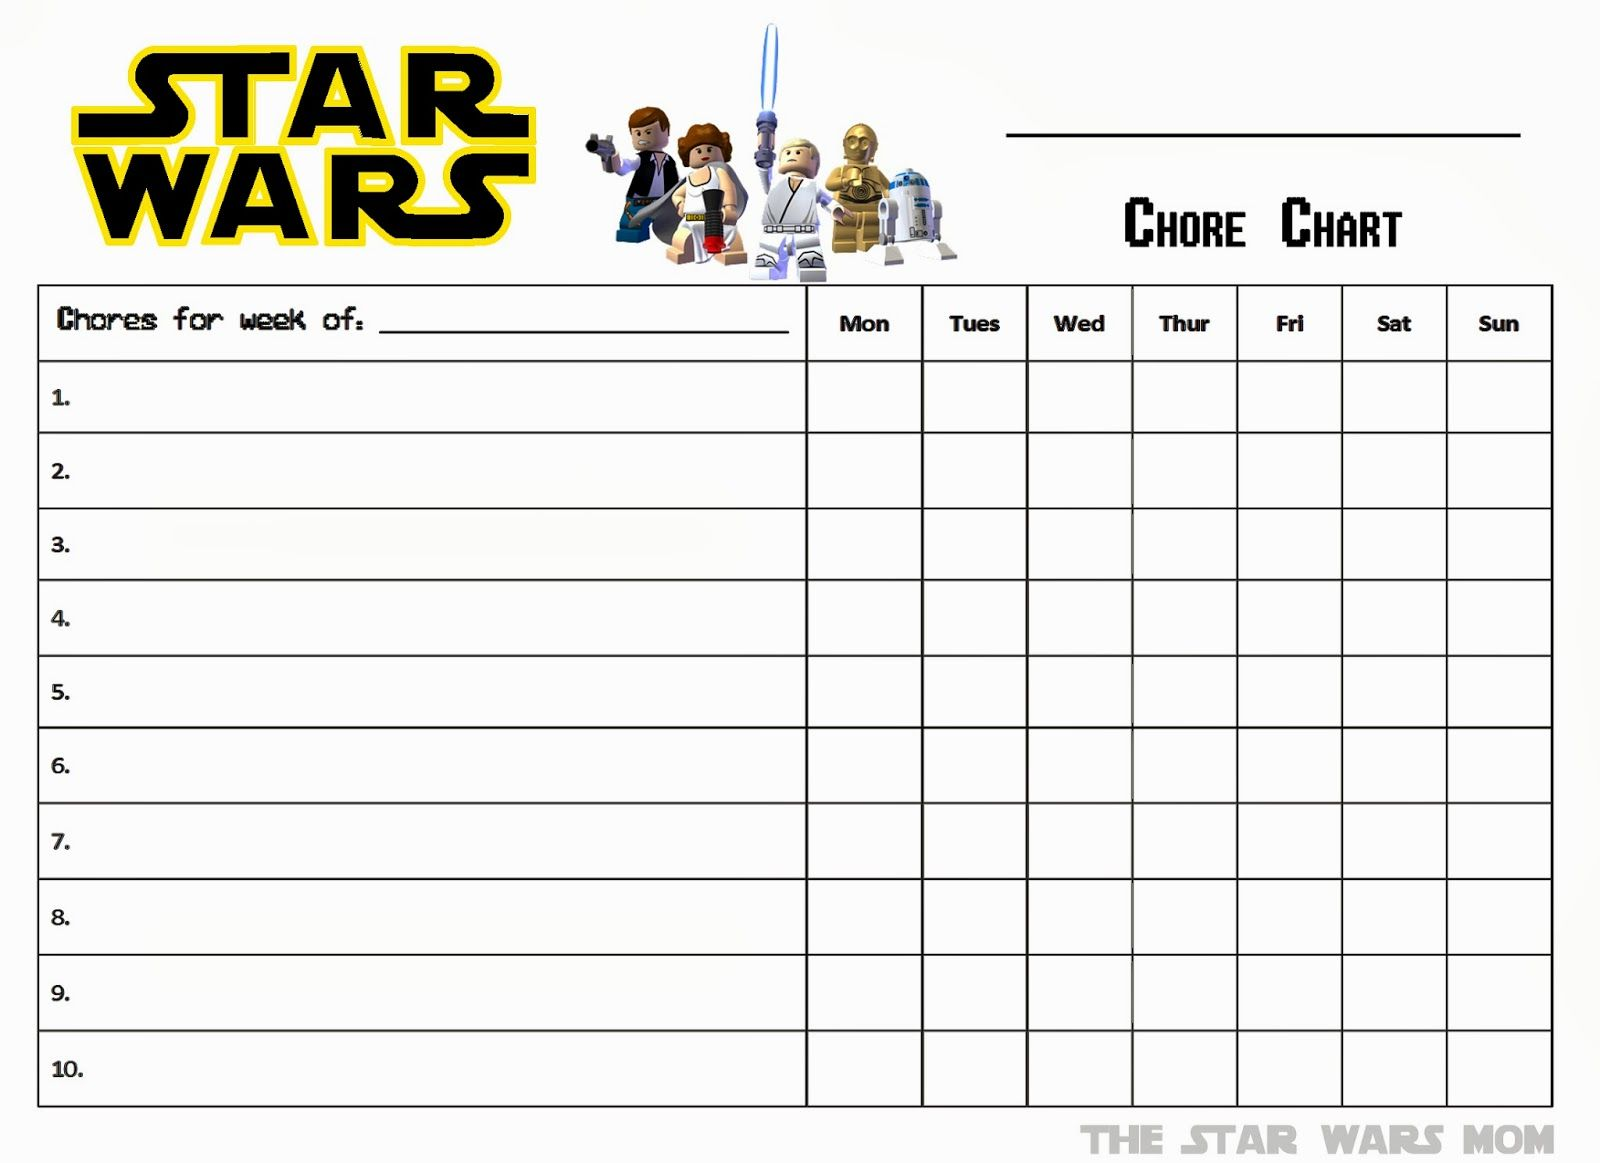 the star wars mom: lego star wars - free printable chores chart